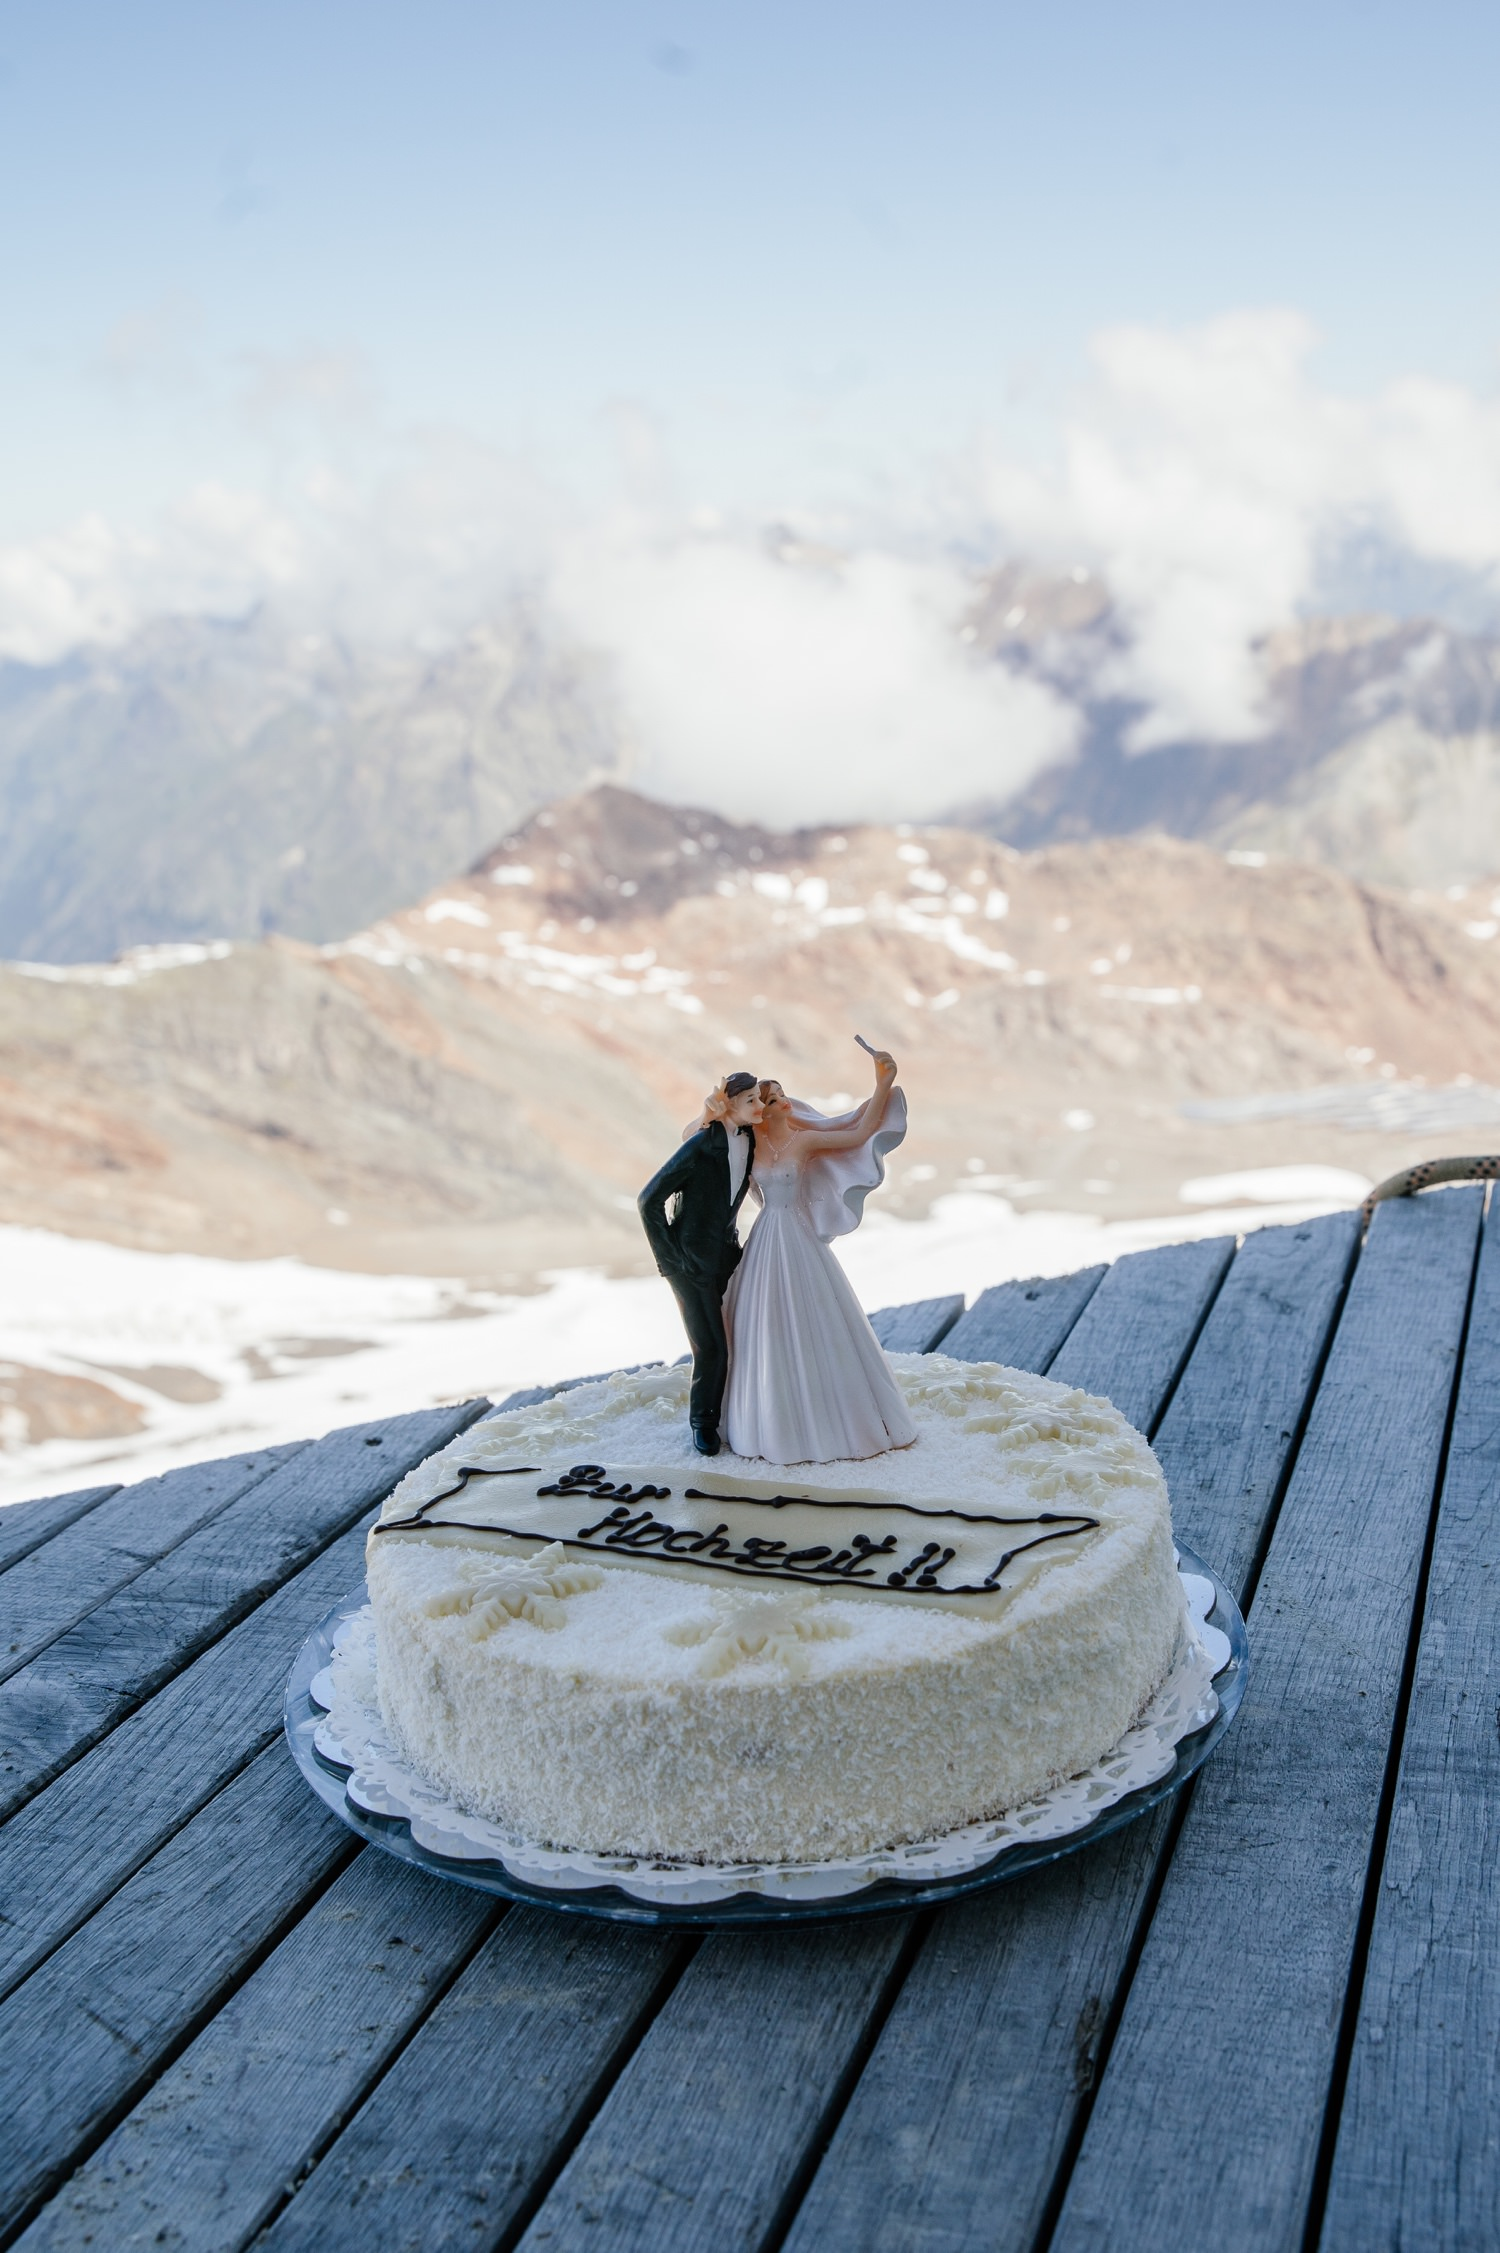 Elopement Wedding in the Mountains